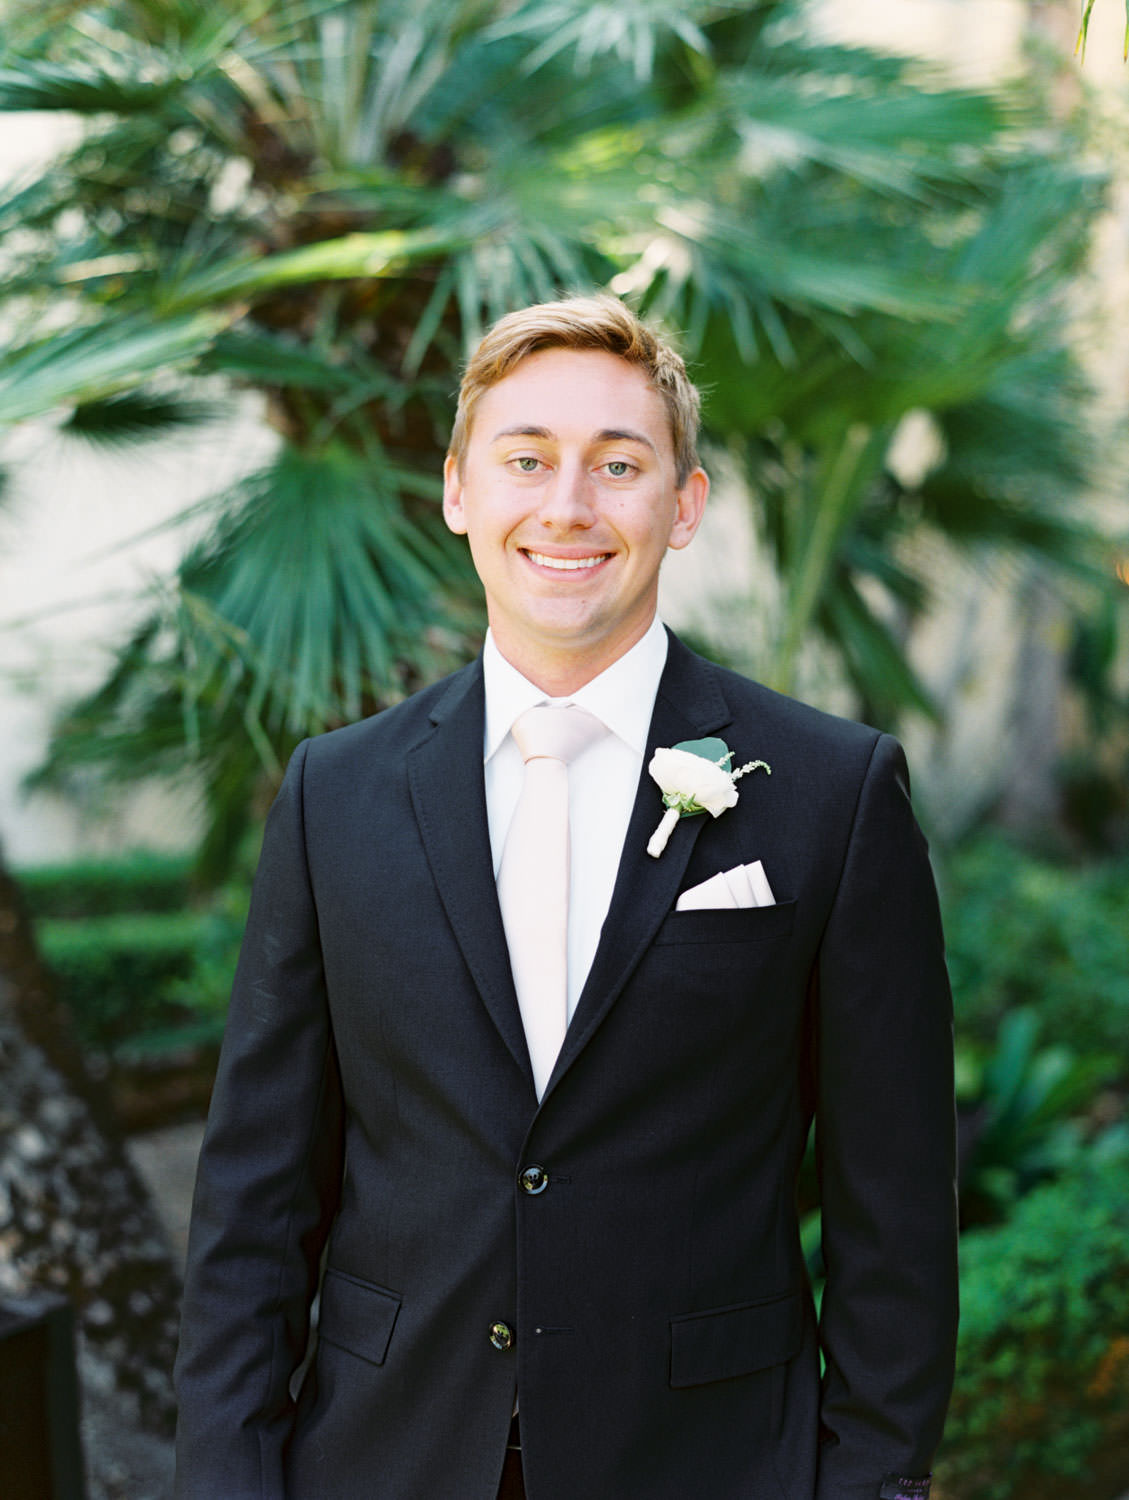 Groom in black suit and blush tie with rose boutonniere. La Jolla wedding shot on film by Cavin Elizabeth Photography